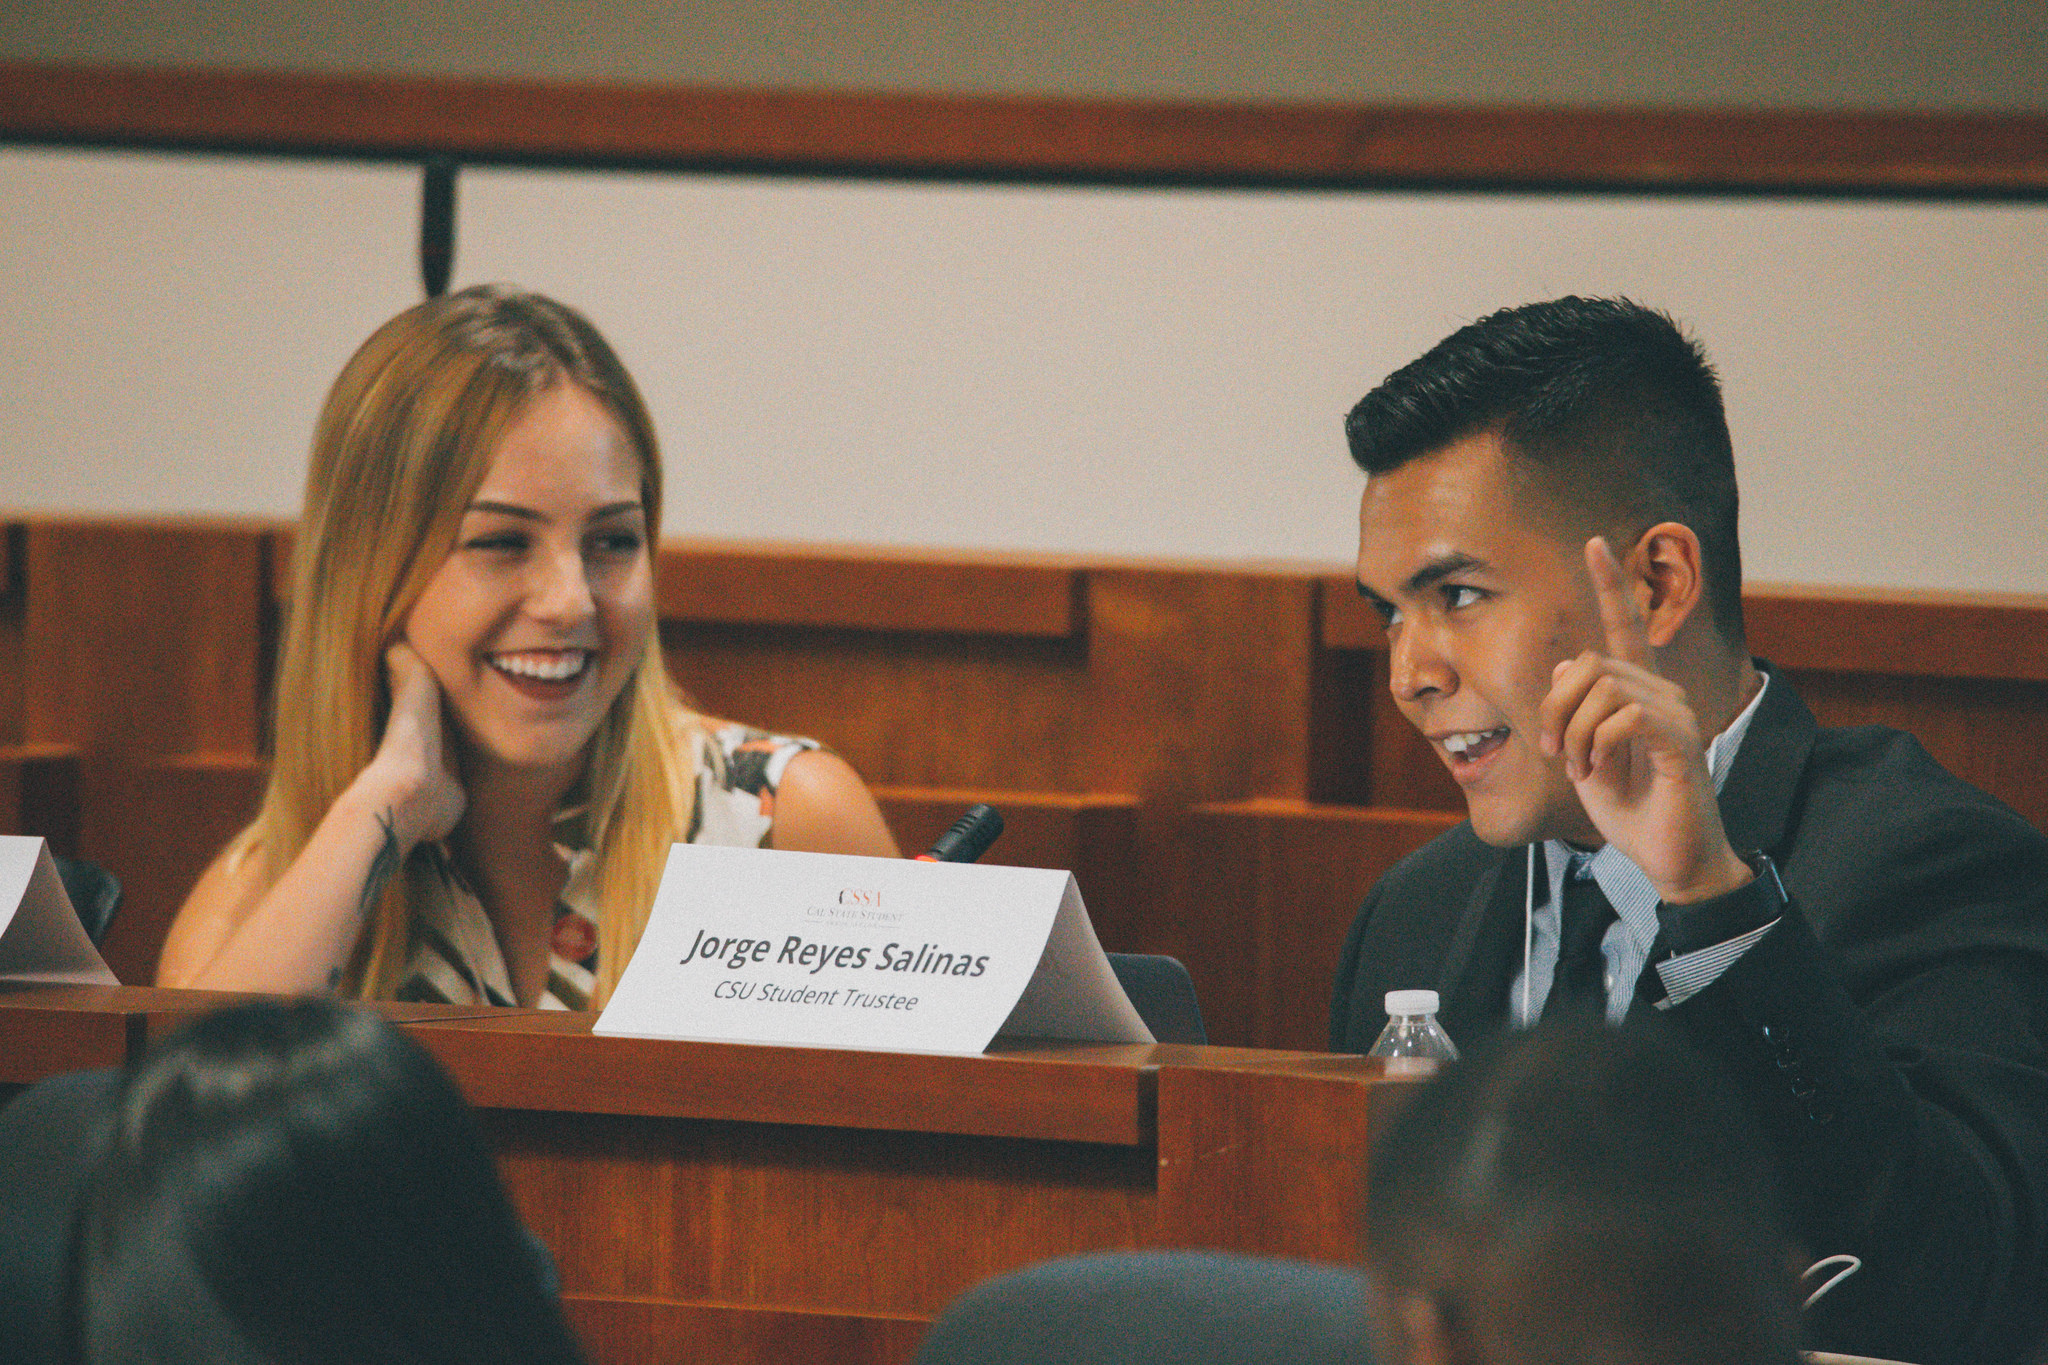 Cal State student trustee Jorge Reyes Salinas, right, with fellow student trustee Emily Hinton at a meeting in July.